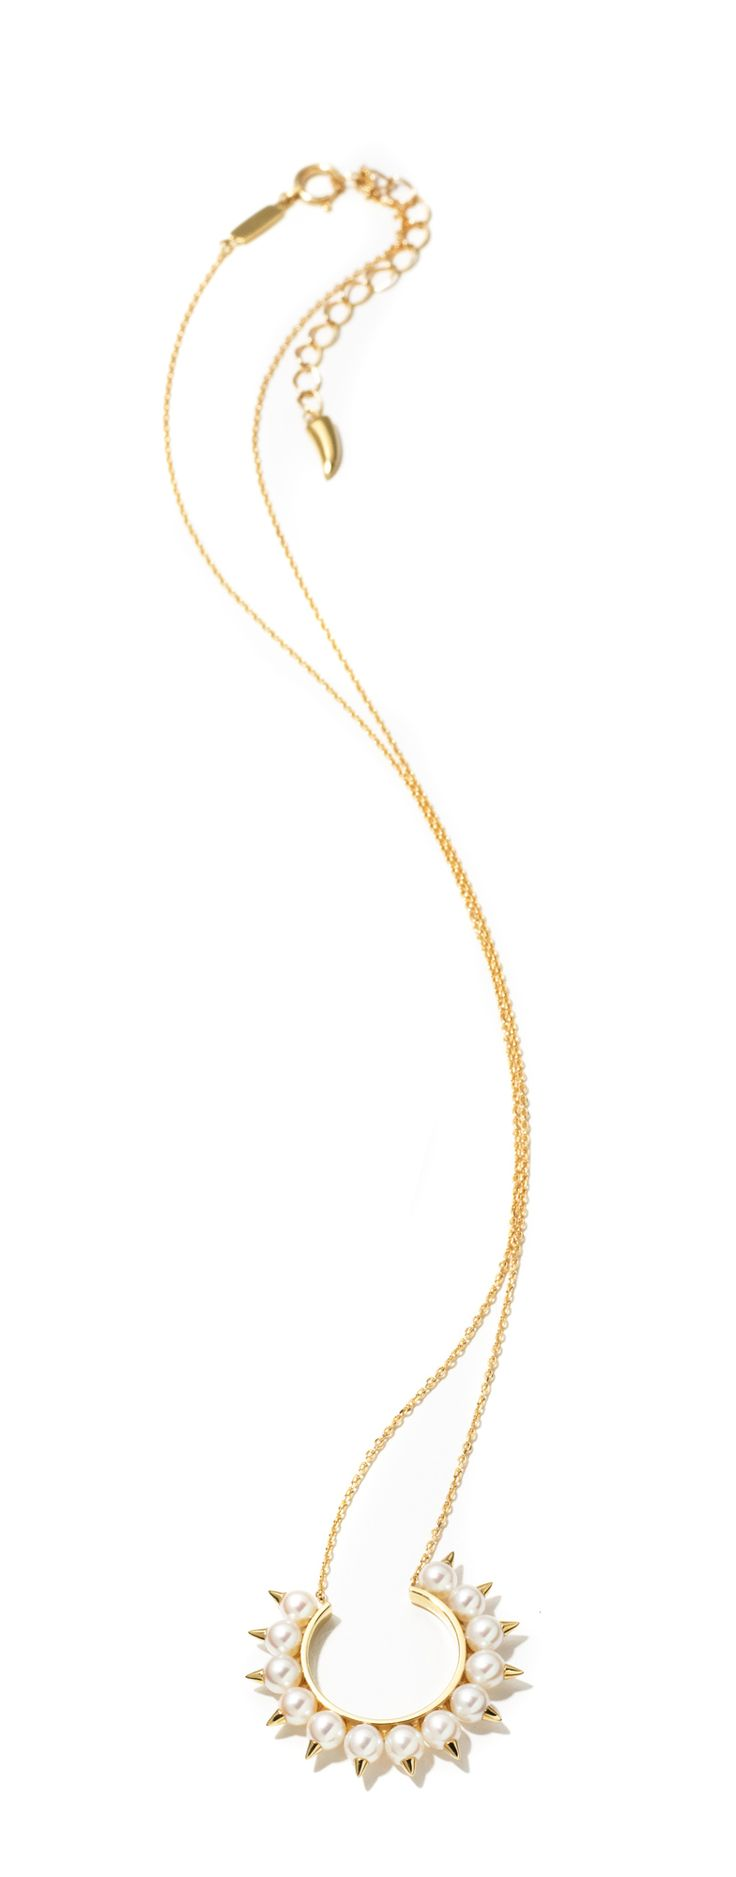 Tasaki Collection by Thakoon gold and freshwater pearl necklace